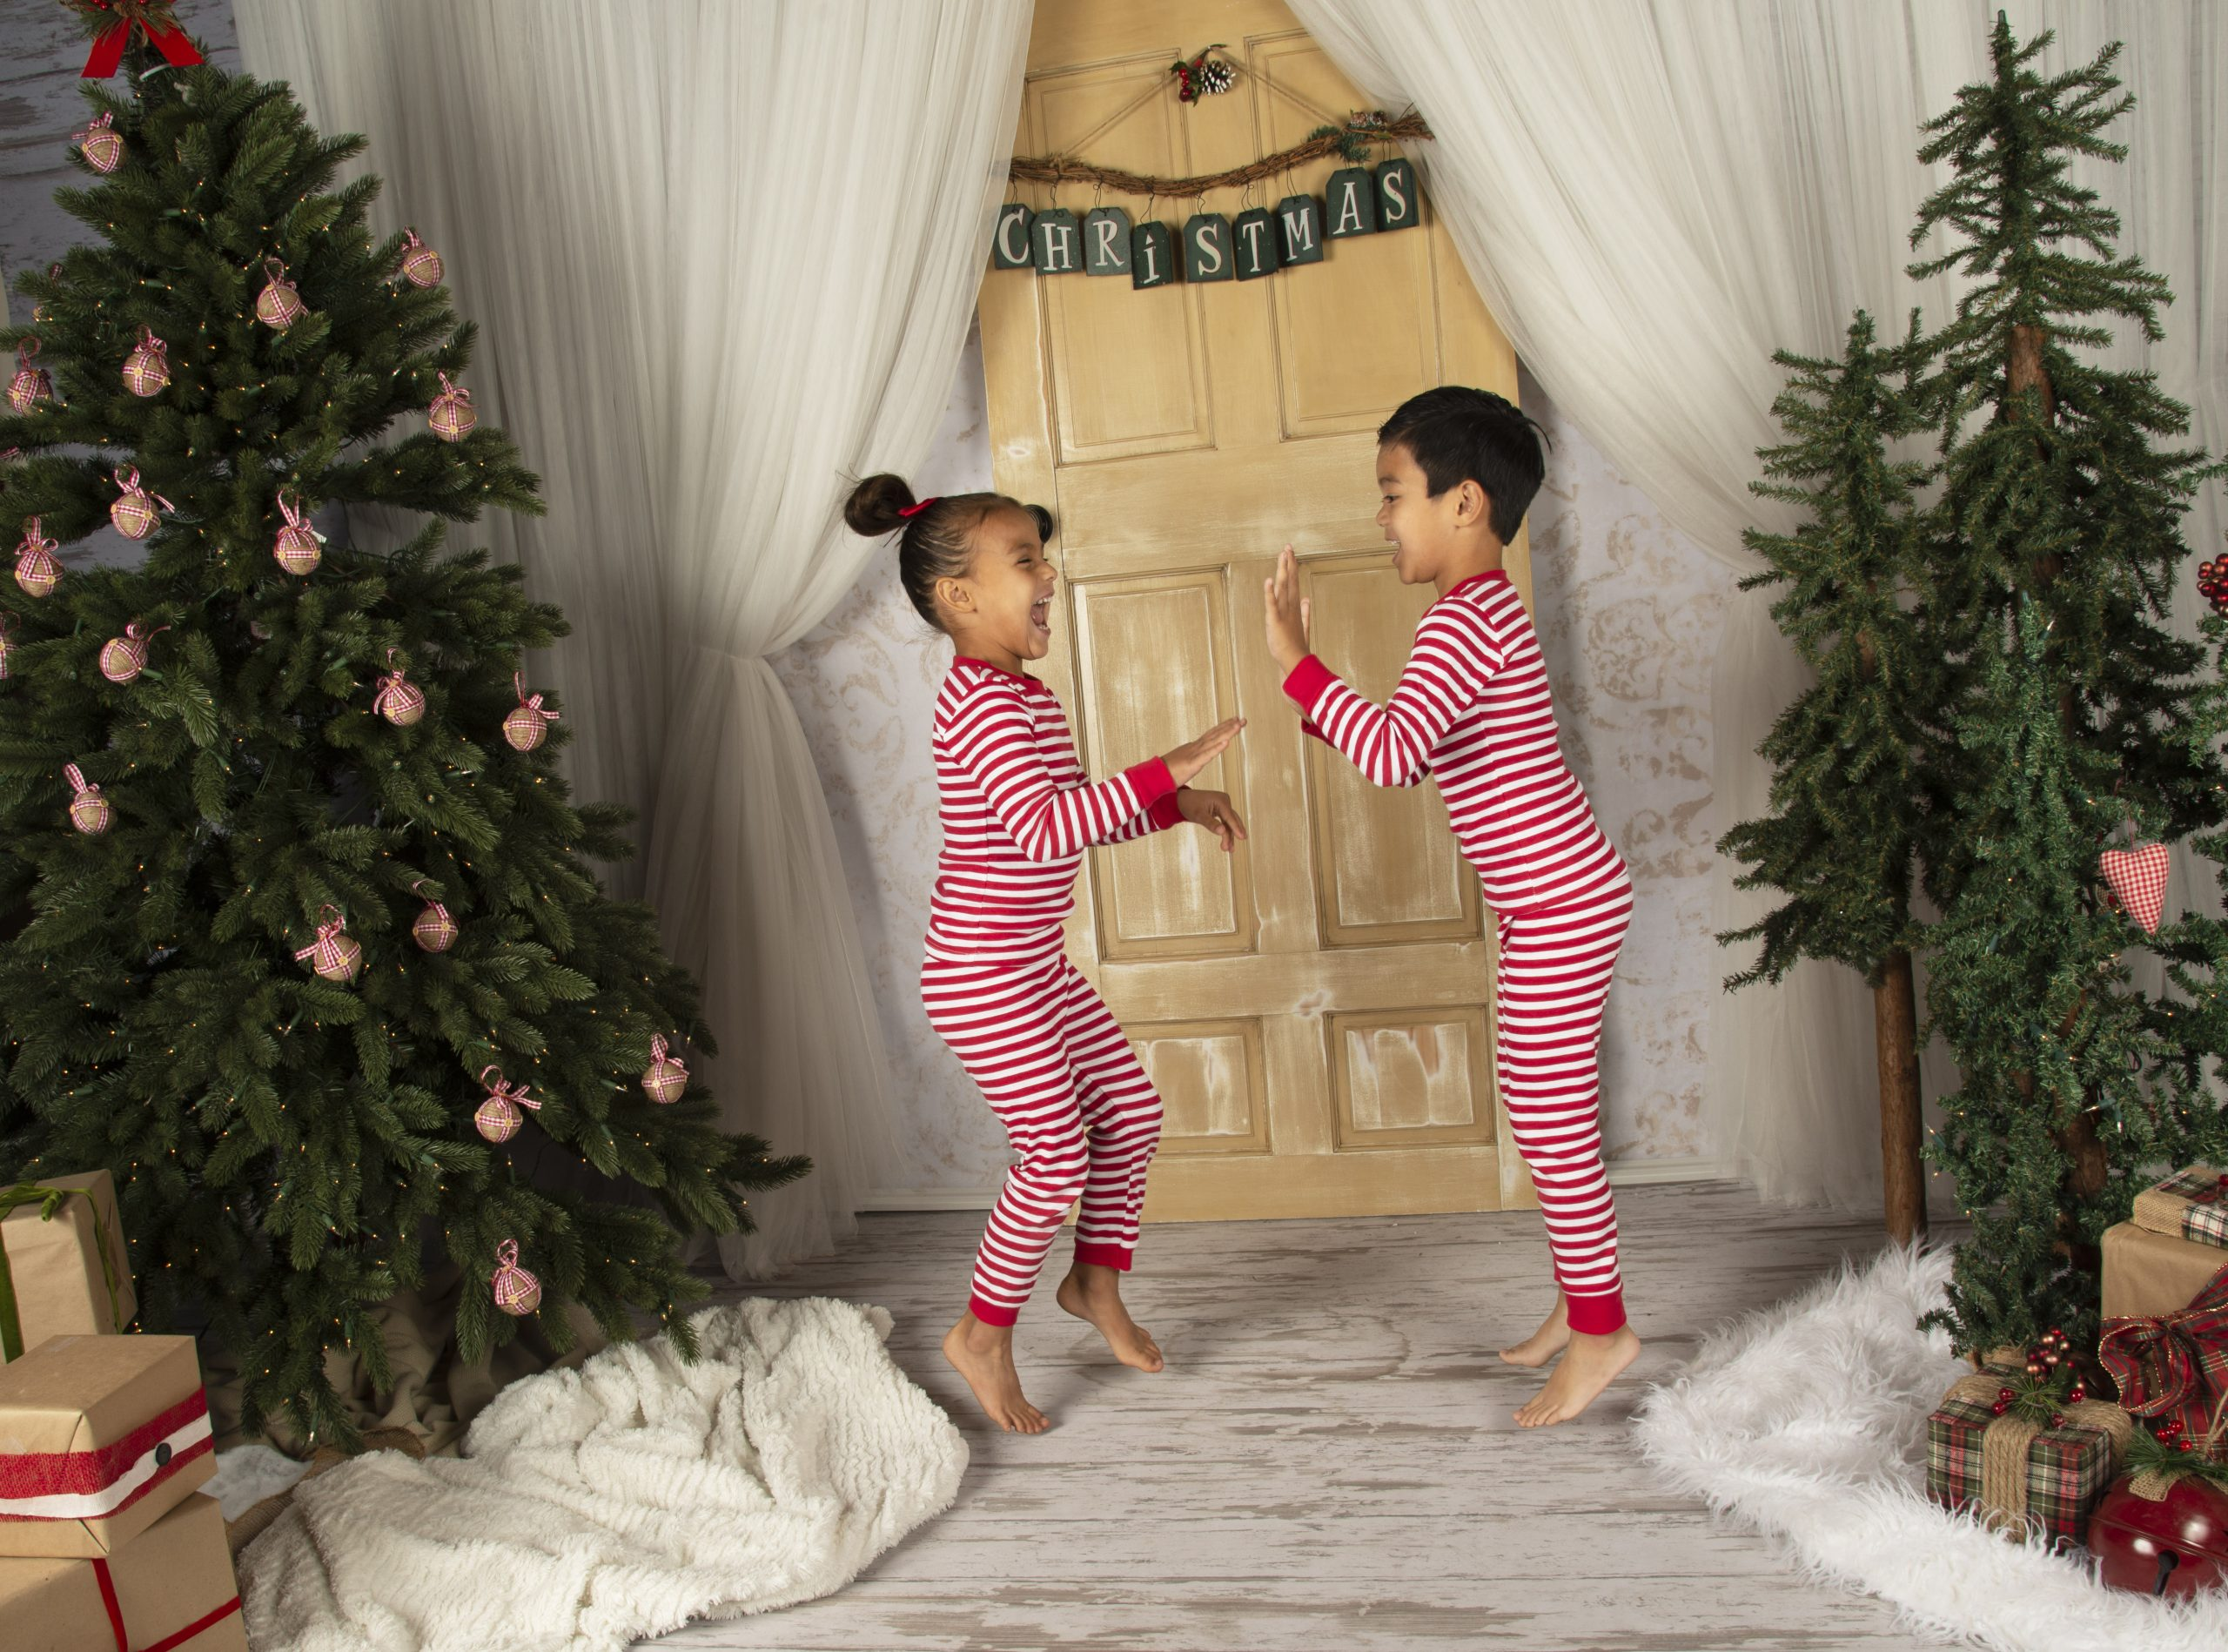 Children wearing organic stipe print pajamas